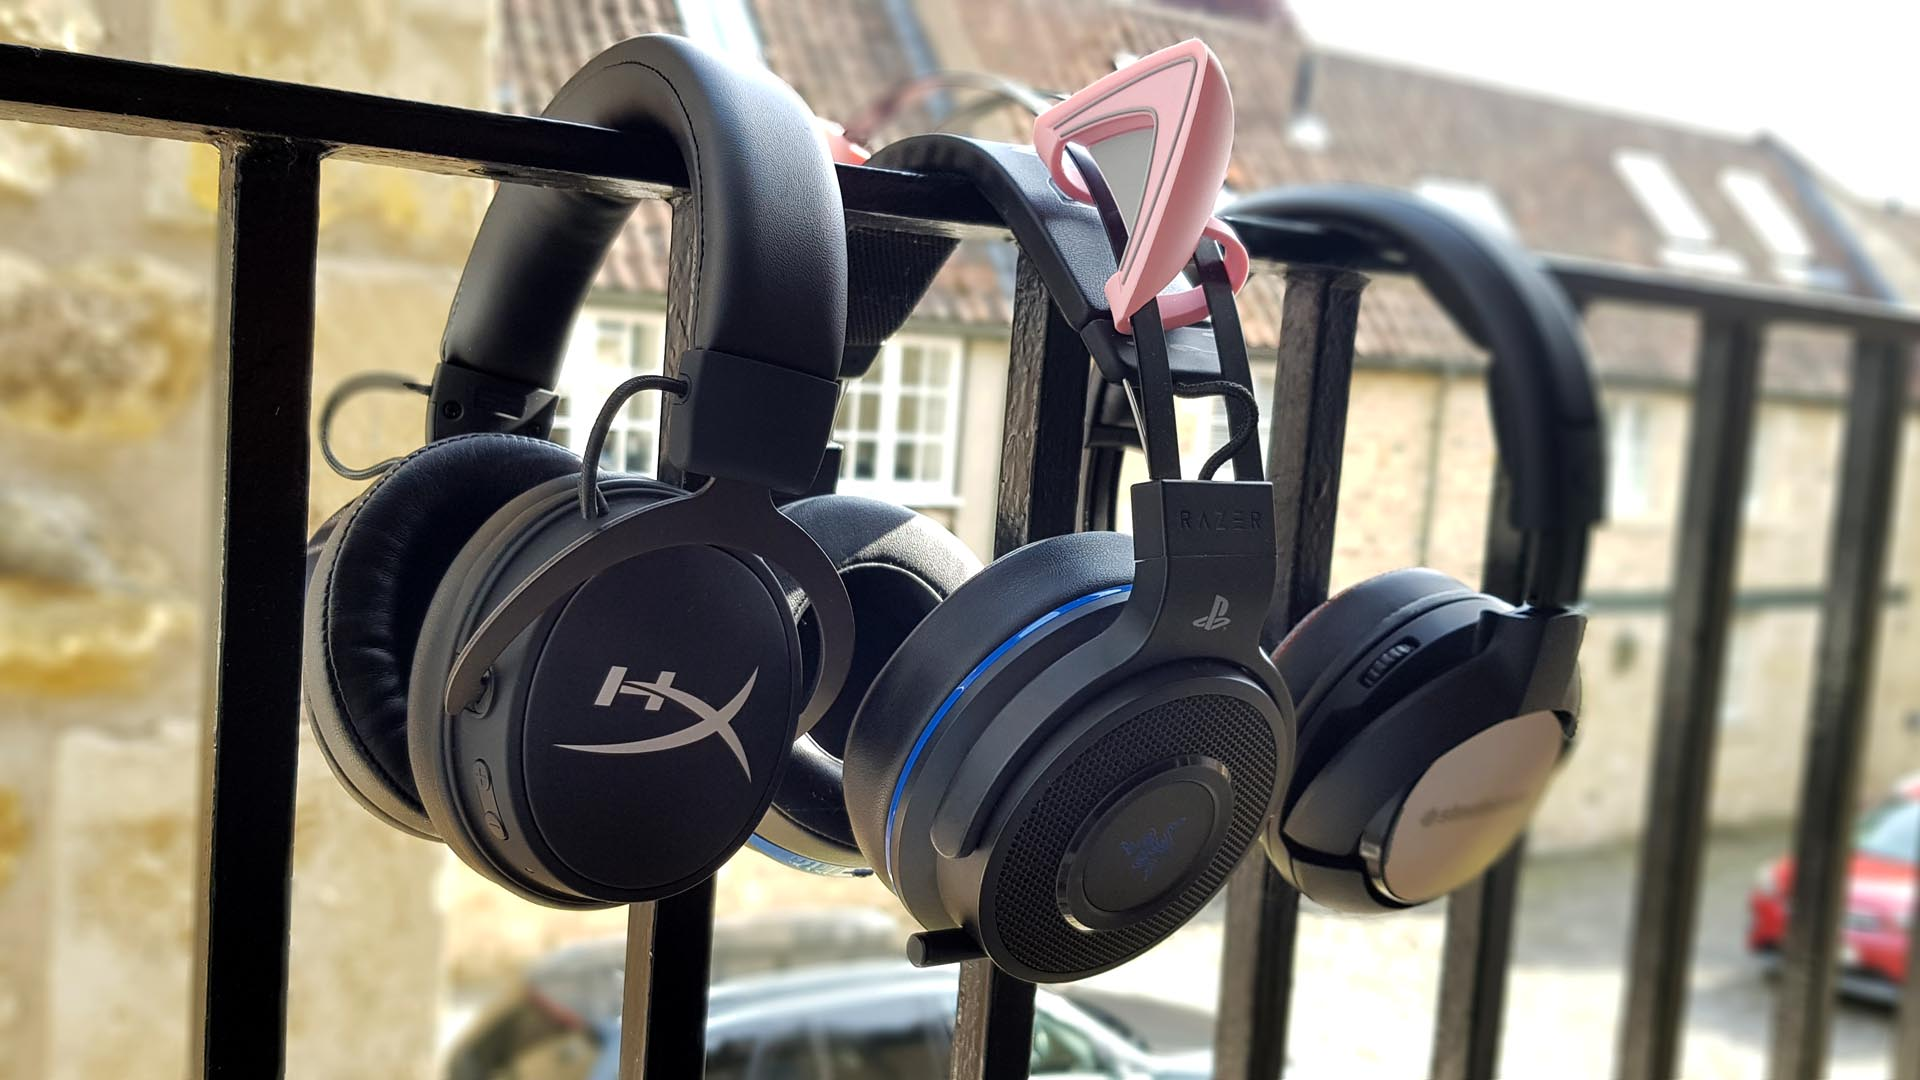 Best Gaming Headset The Top Wired And Wireless Headsets In 2020 Pcgamesn